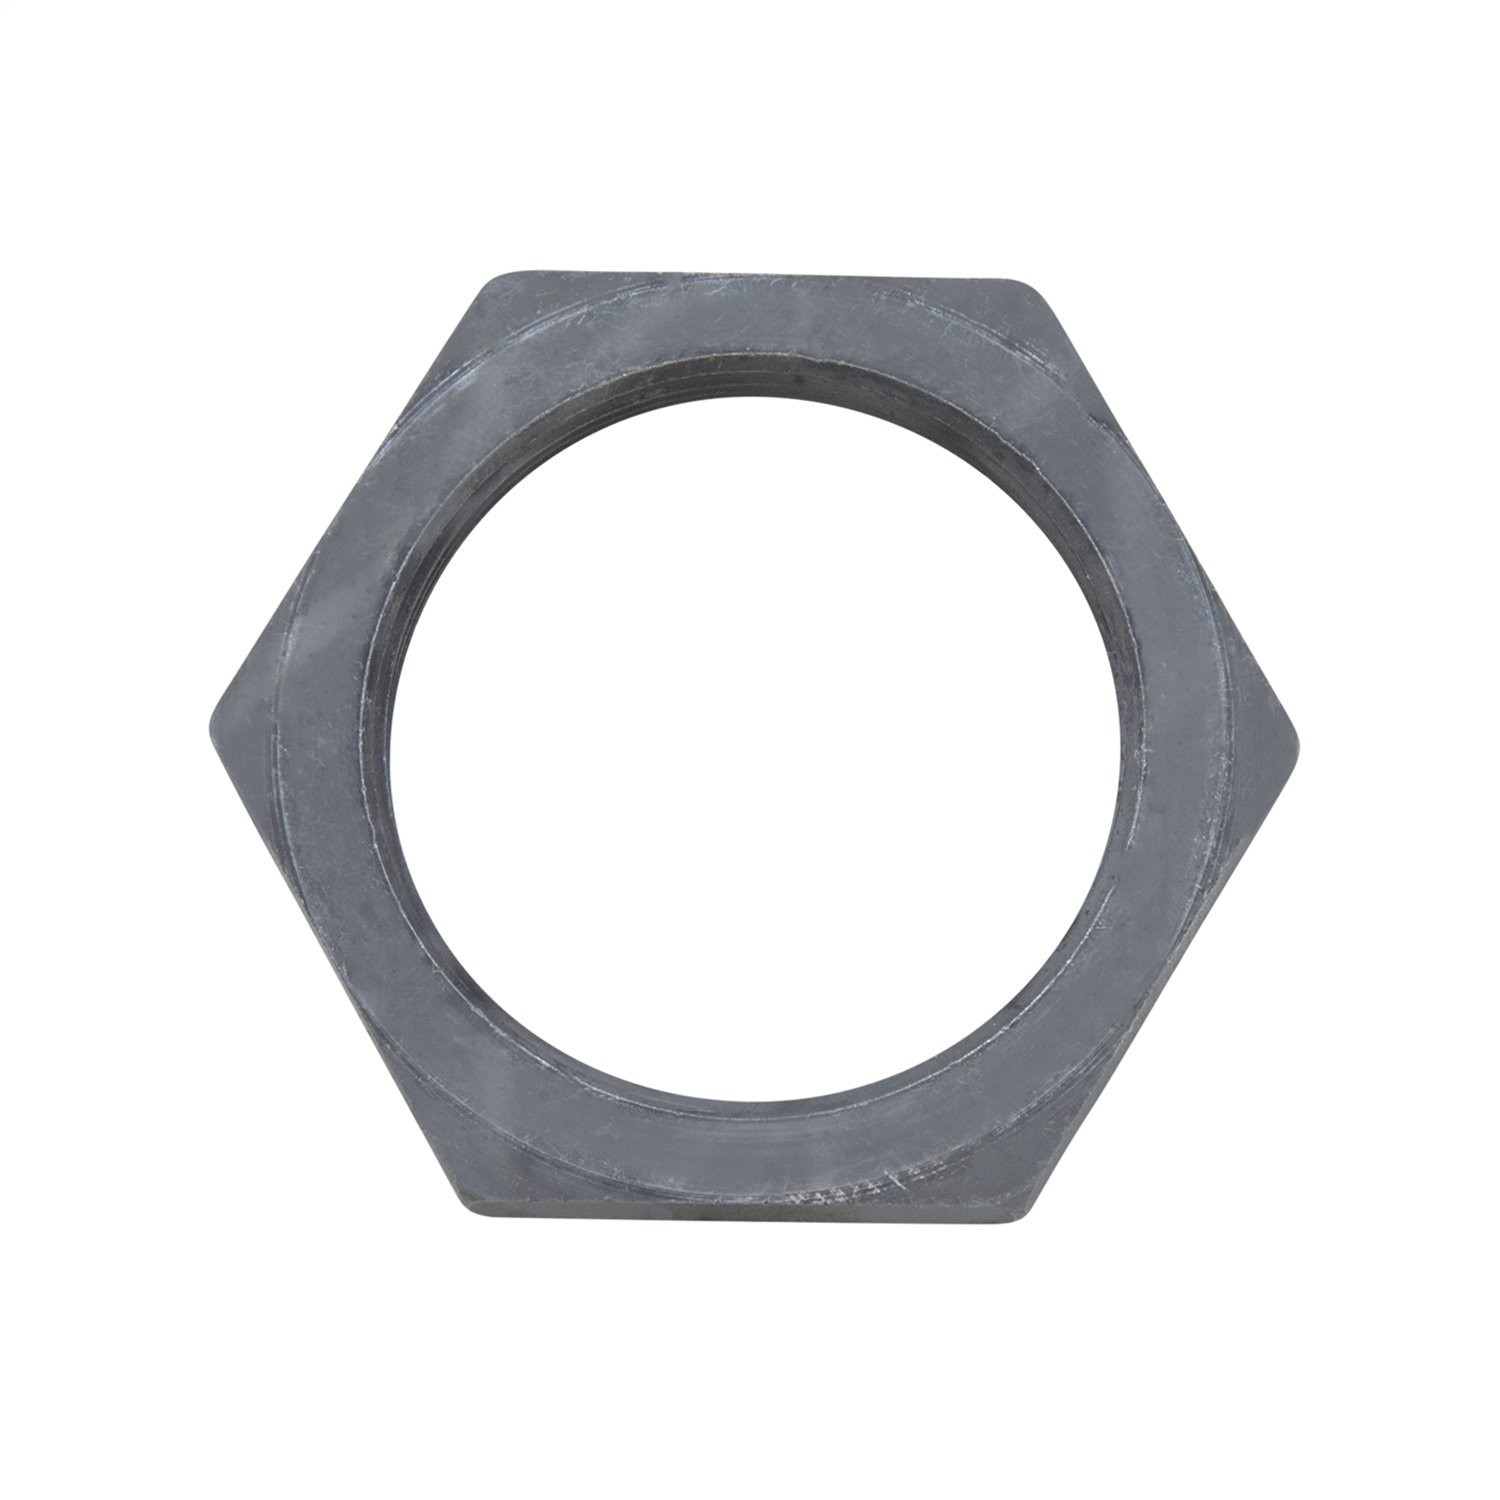 YSPSP-008 Spindle Nut for Dodge Dana 60 Front Differential Yukon Gear /& Axle